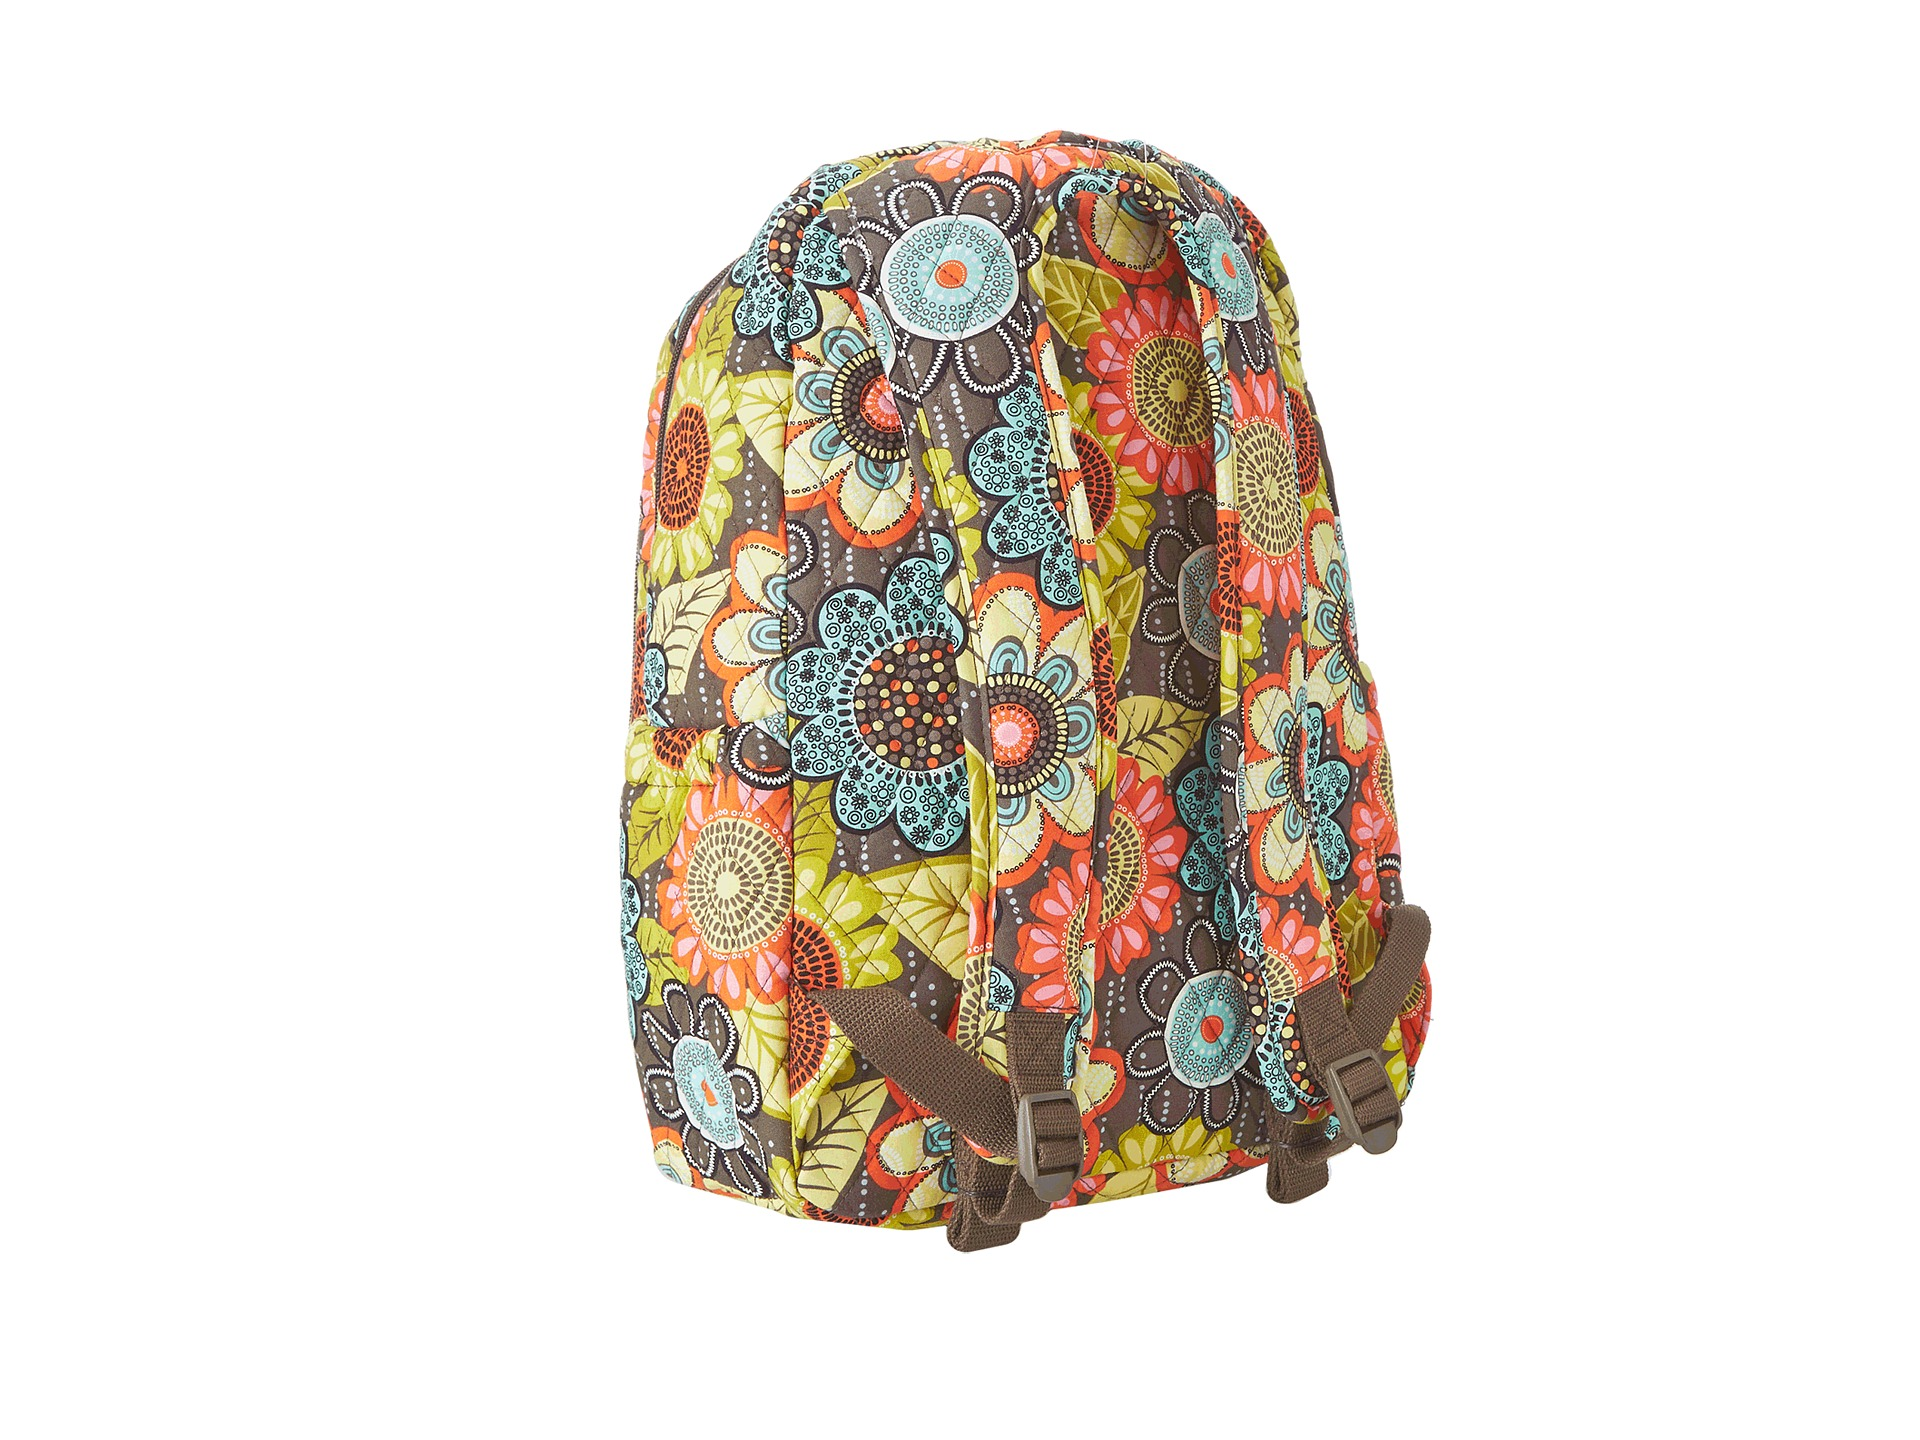 vera bradley backpack baby bag bags shipped free at zappos. Black Bedroom Furniture Sets. Home Design Ideas